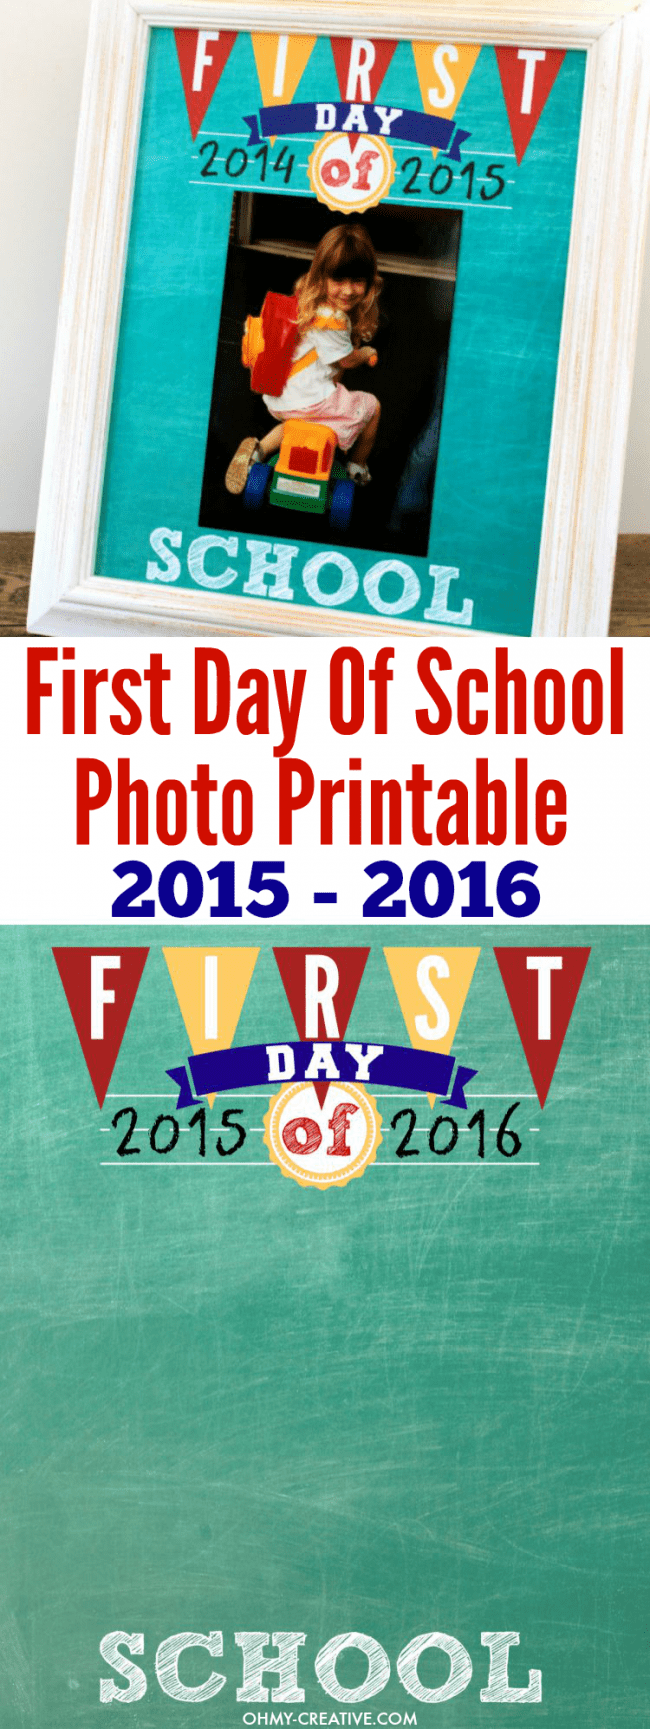 Display your kids First Day Of School Photos with this FREE Printable! Find school dates from 2014 - 2020. All years are available to print now! Can be added to a scrapbook after the school year is finished!   OHMY-CREATIVE.COM